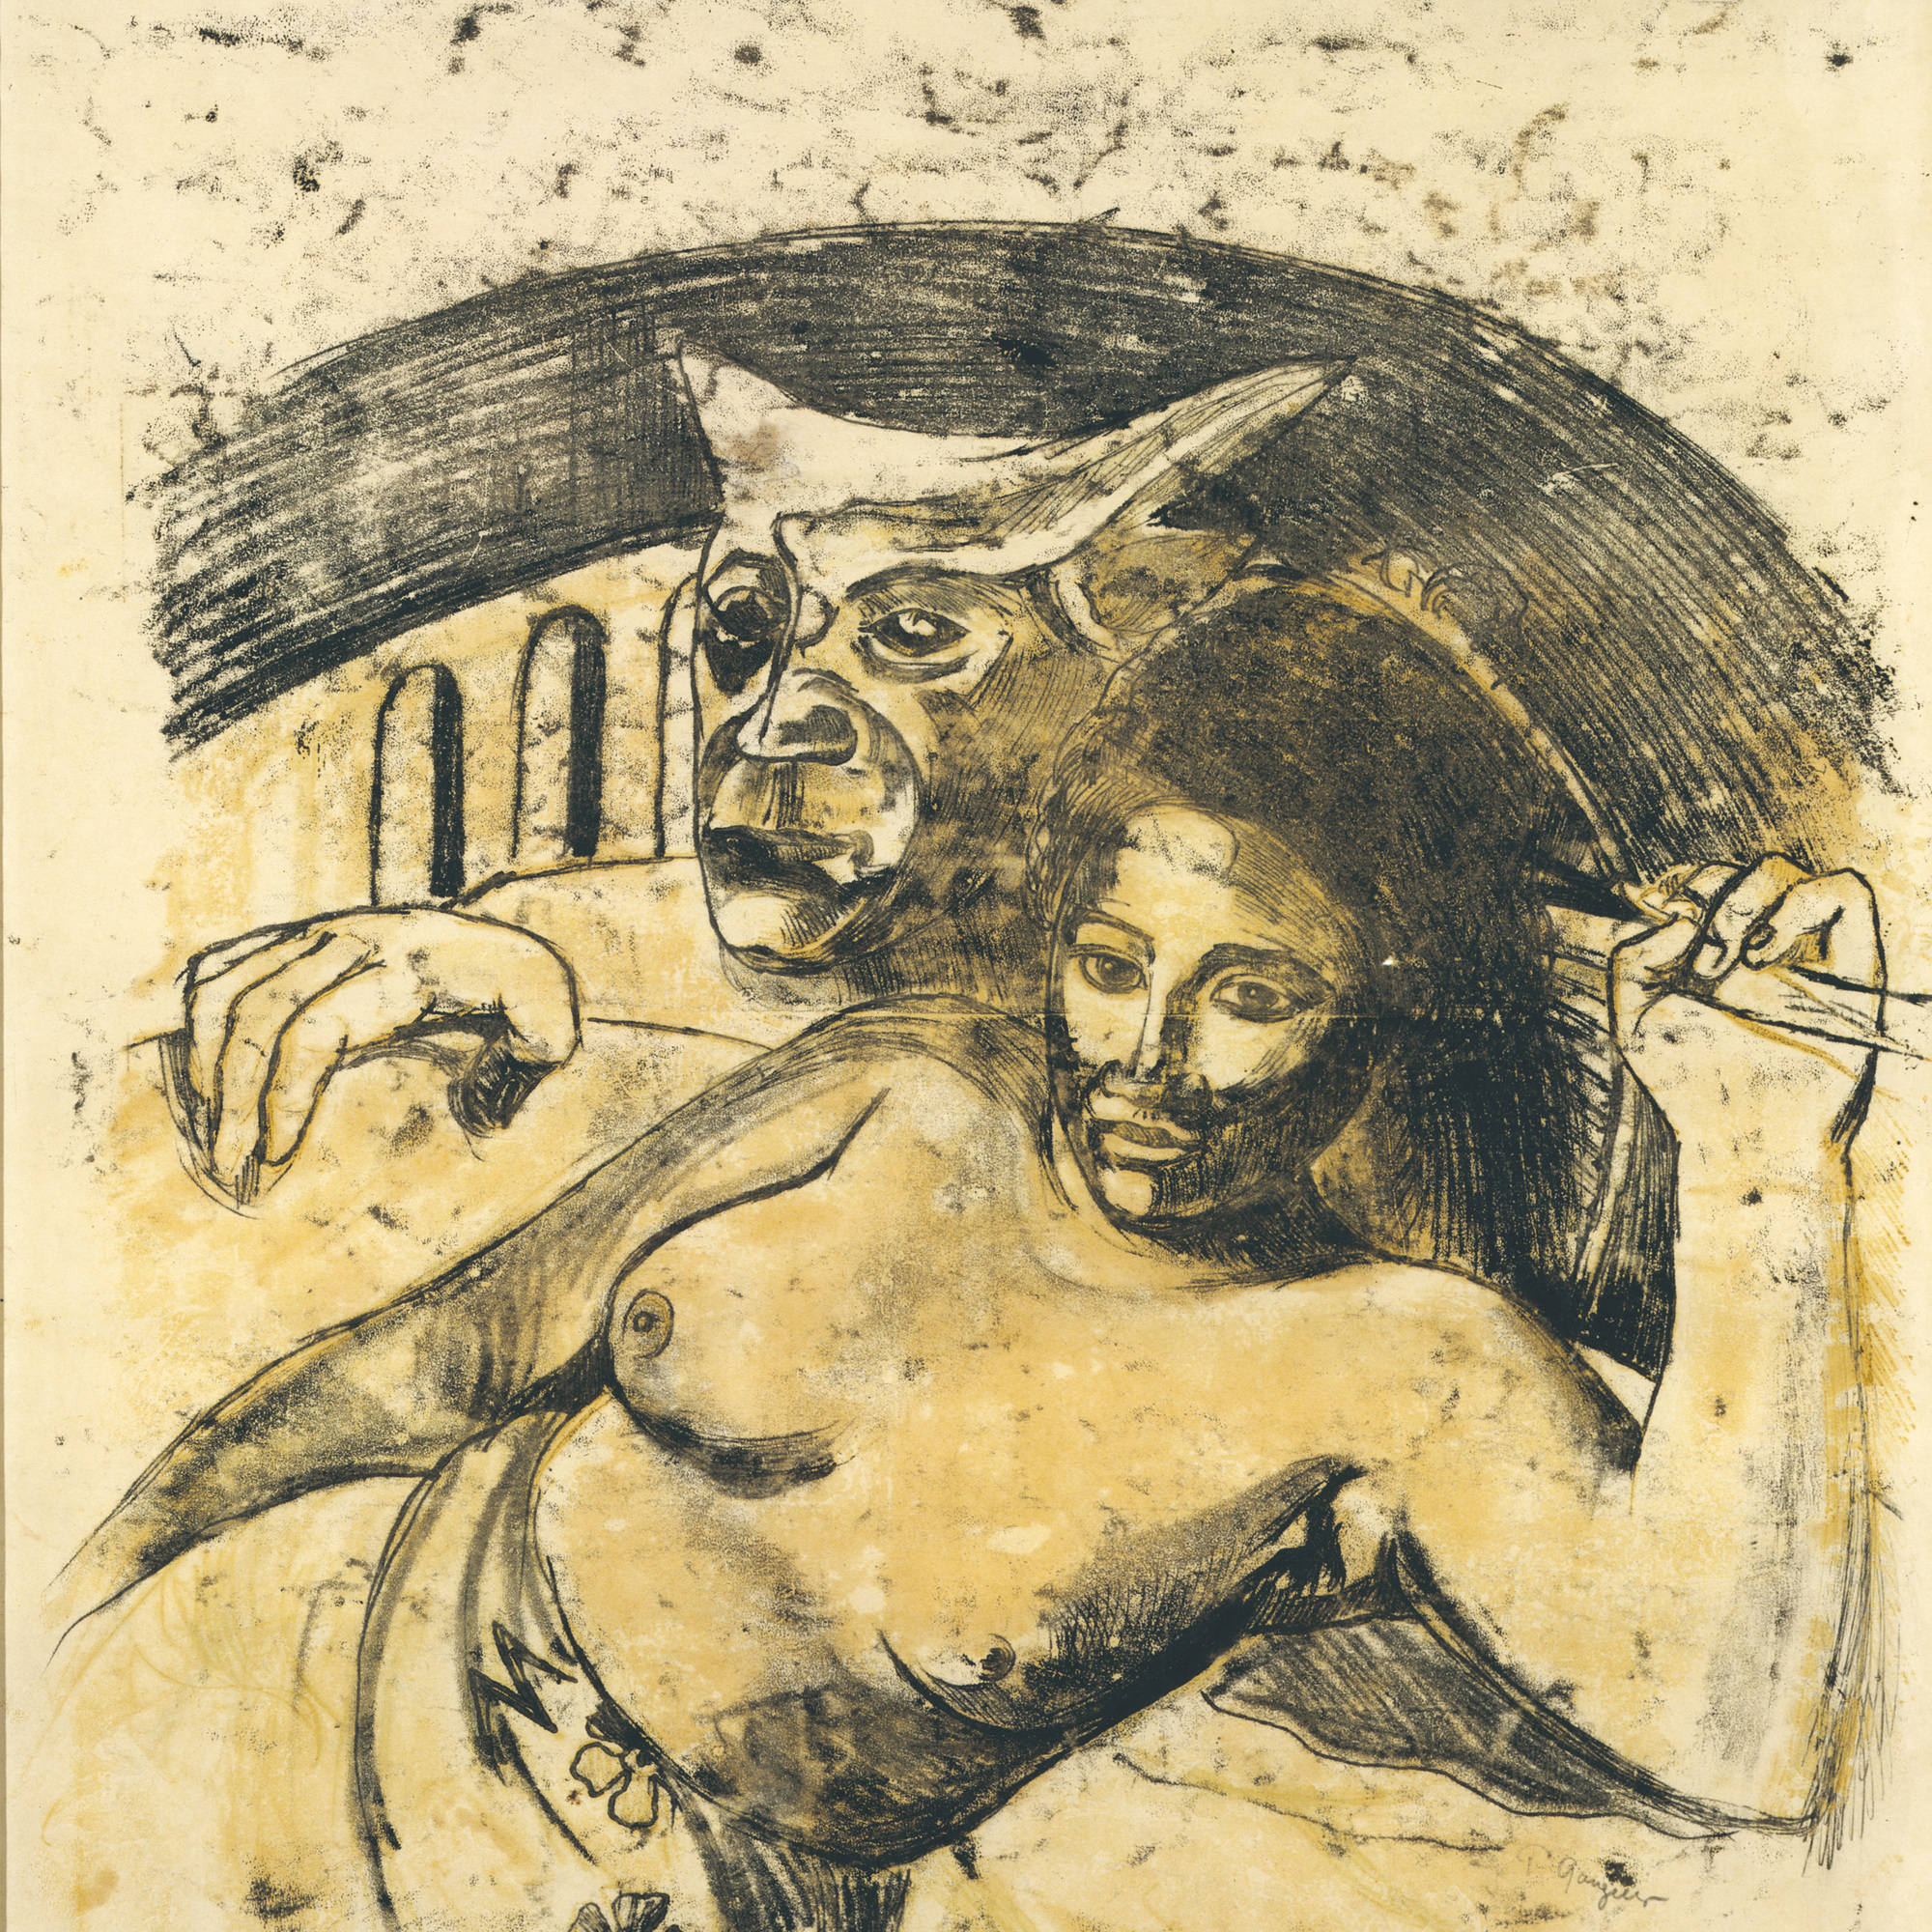 "Paul Gauguin. Tahitian Woman with Evil Spirit. c. 1900. Oil transfer drawing, sheet: 22 1/16 x 17 13/16"" (56.1 x 45.3 cm). Private collection"